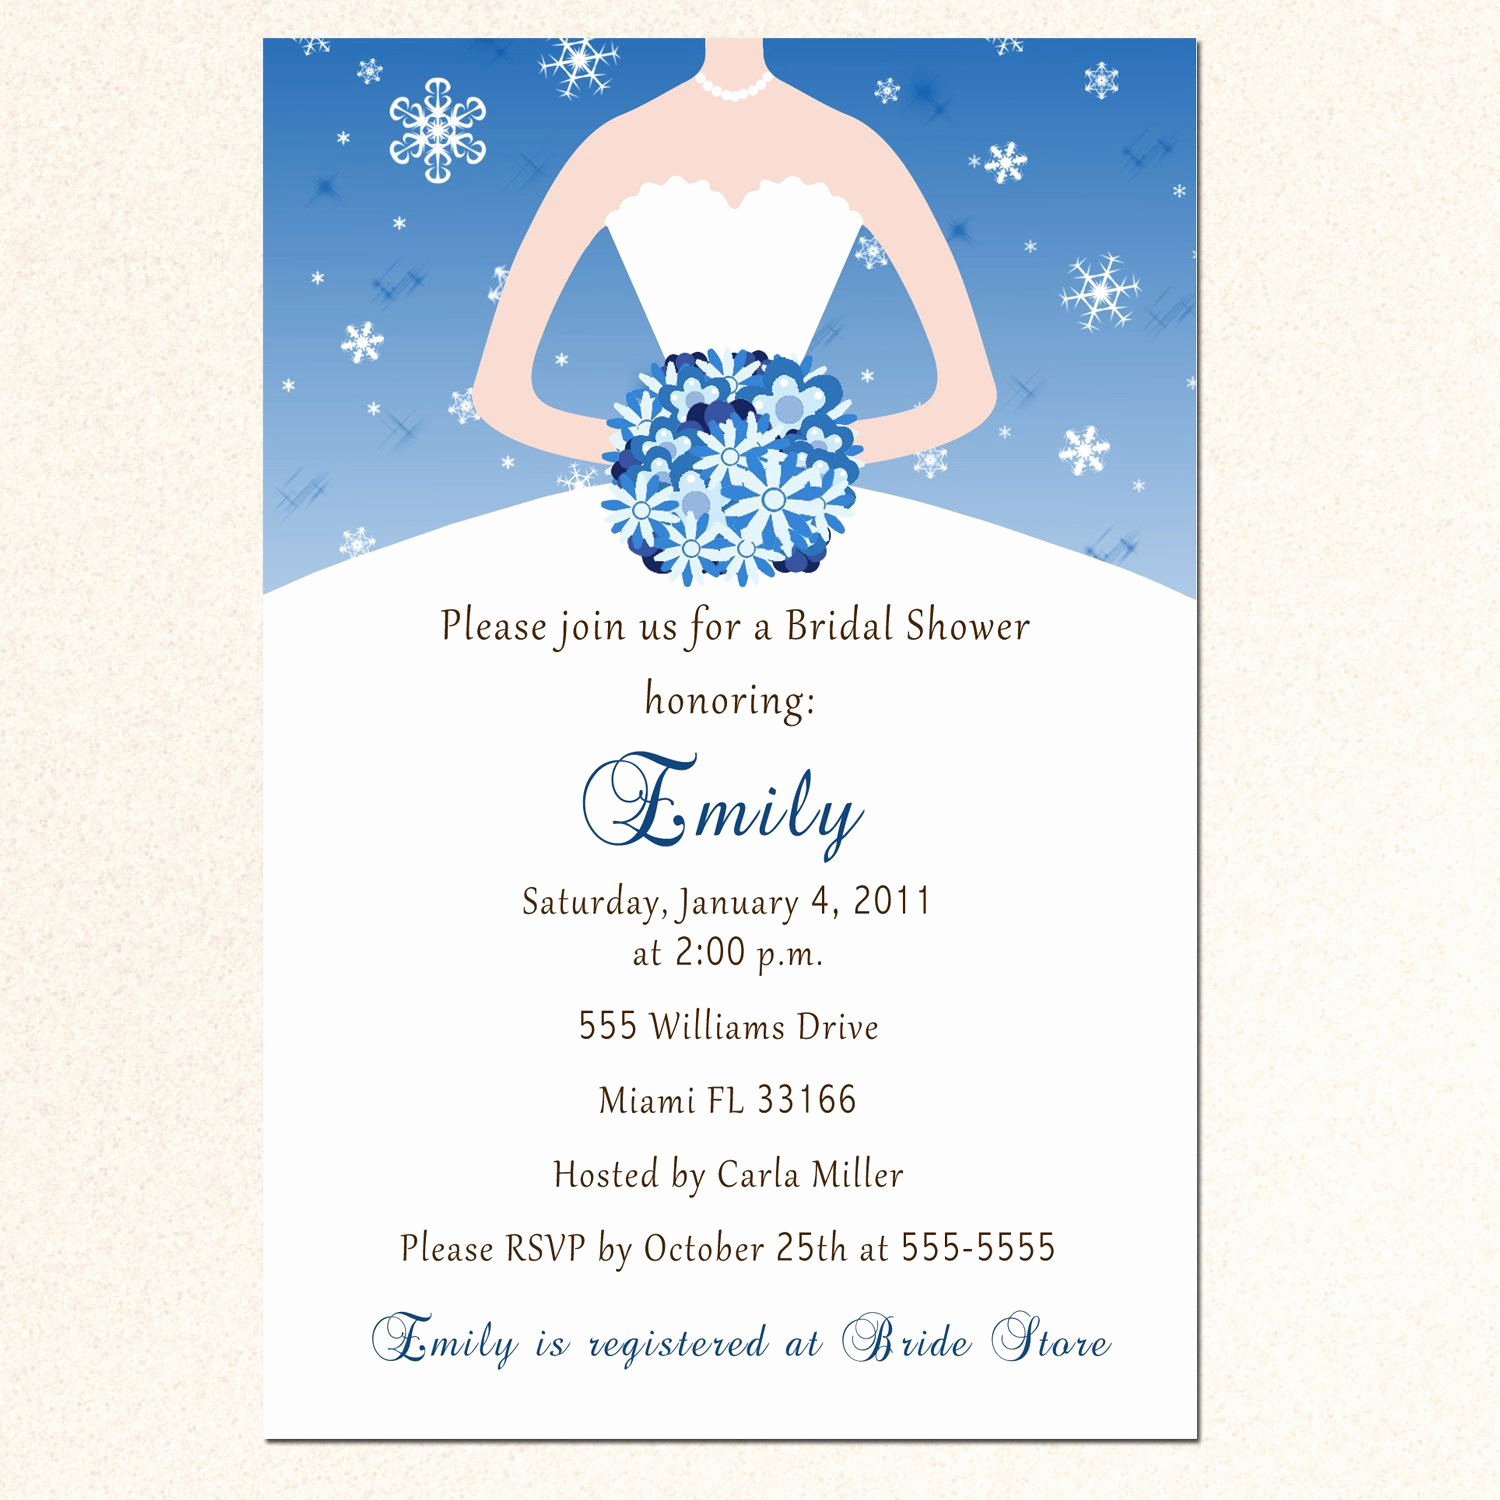 Free Bridal Shower Invitation Printables Best Of Bridal Shower Invitation Templates Bridal Shower